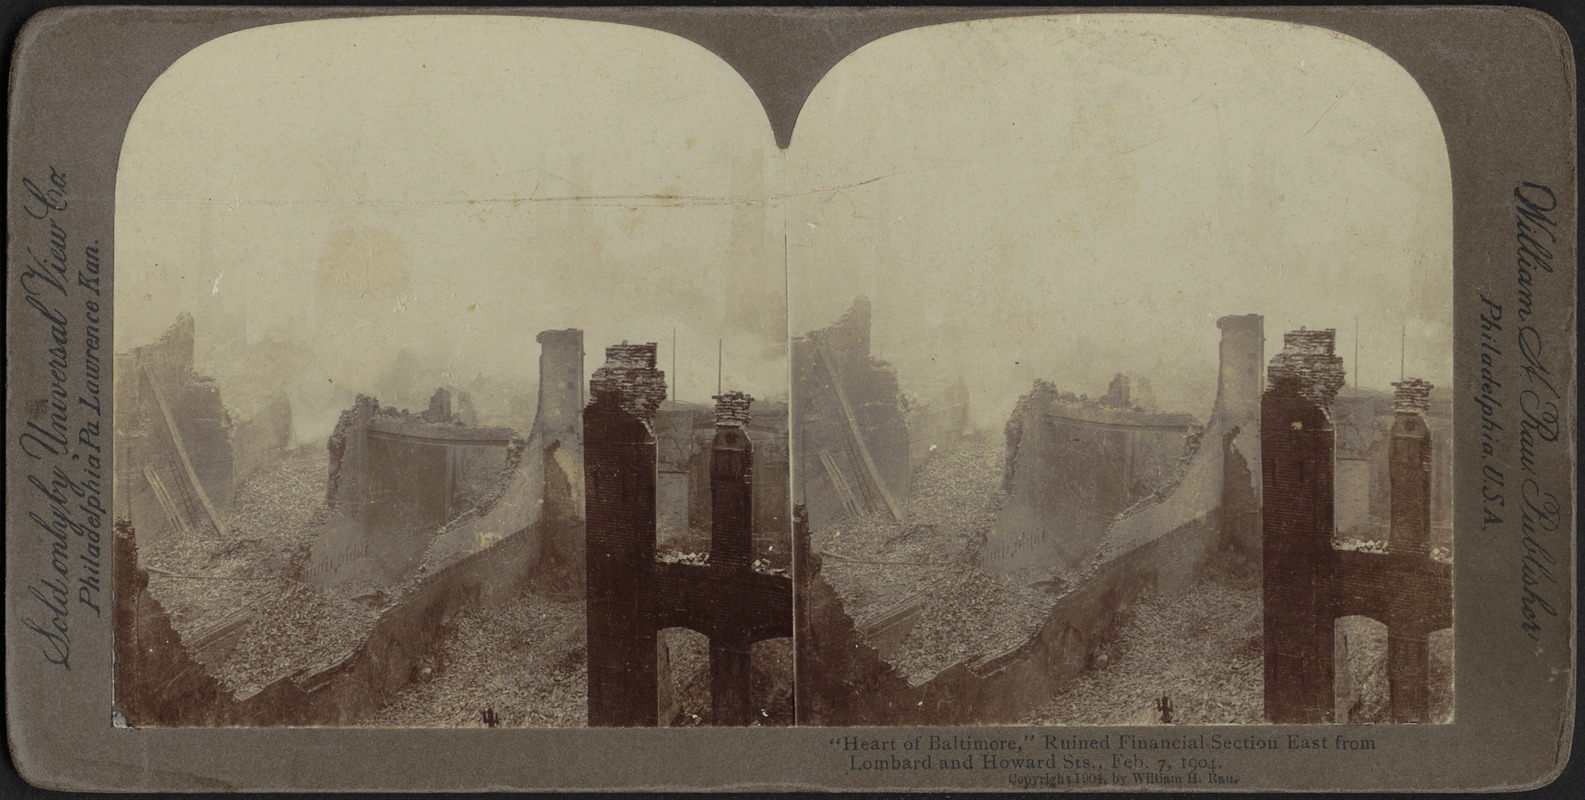 """""""Heart of Baltimore,"""" ruined financial section east from Lombard and Howard Sts., Feb. 7, 1904"""